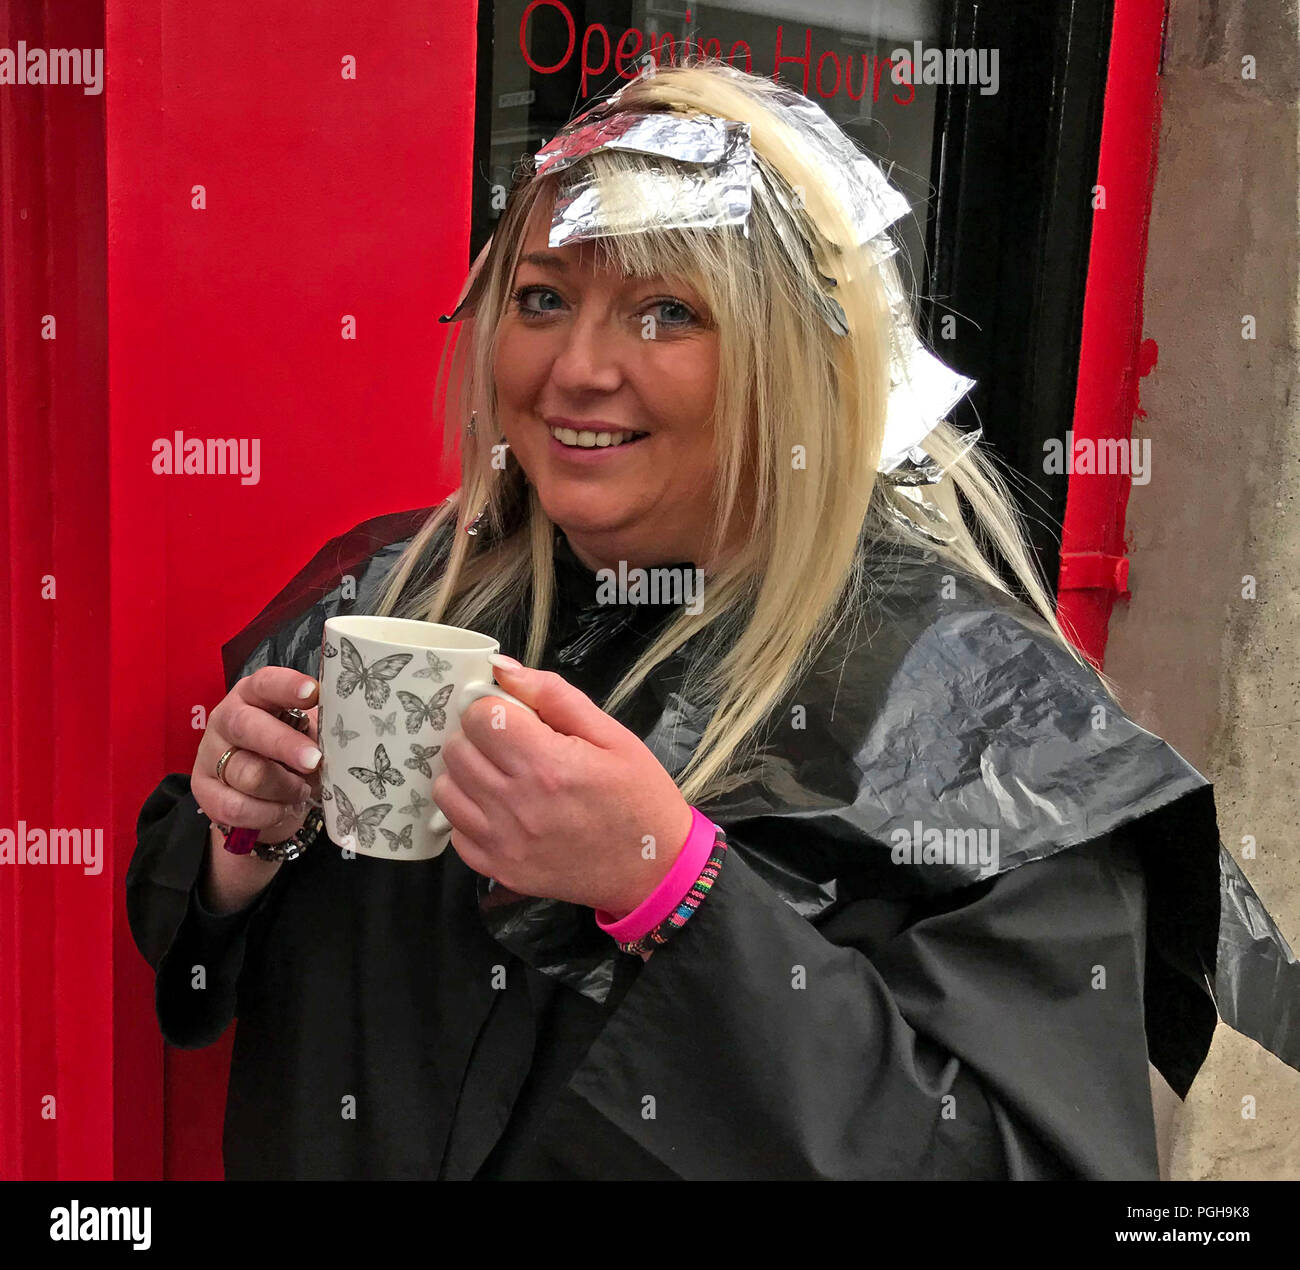 Woman having hair coloured, outside hair salon, Perth, Scotland, UK - Stock Image